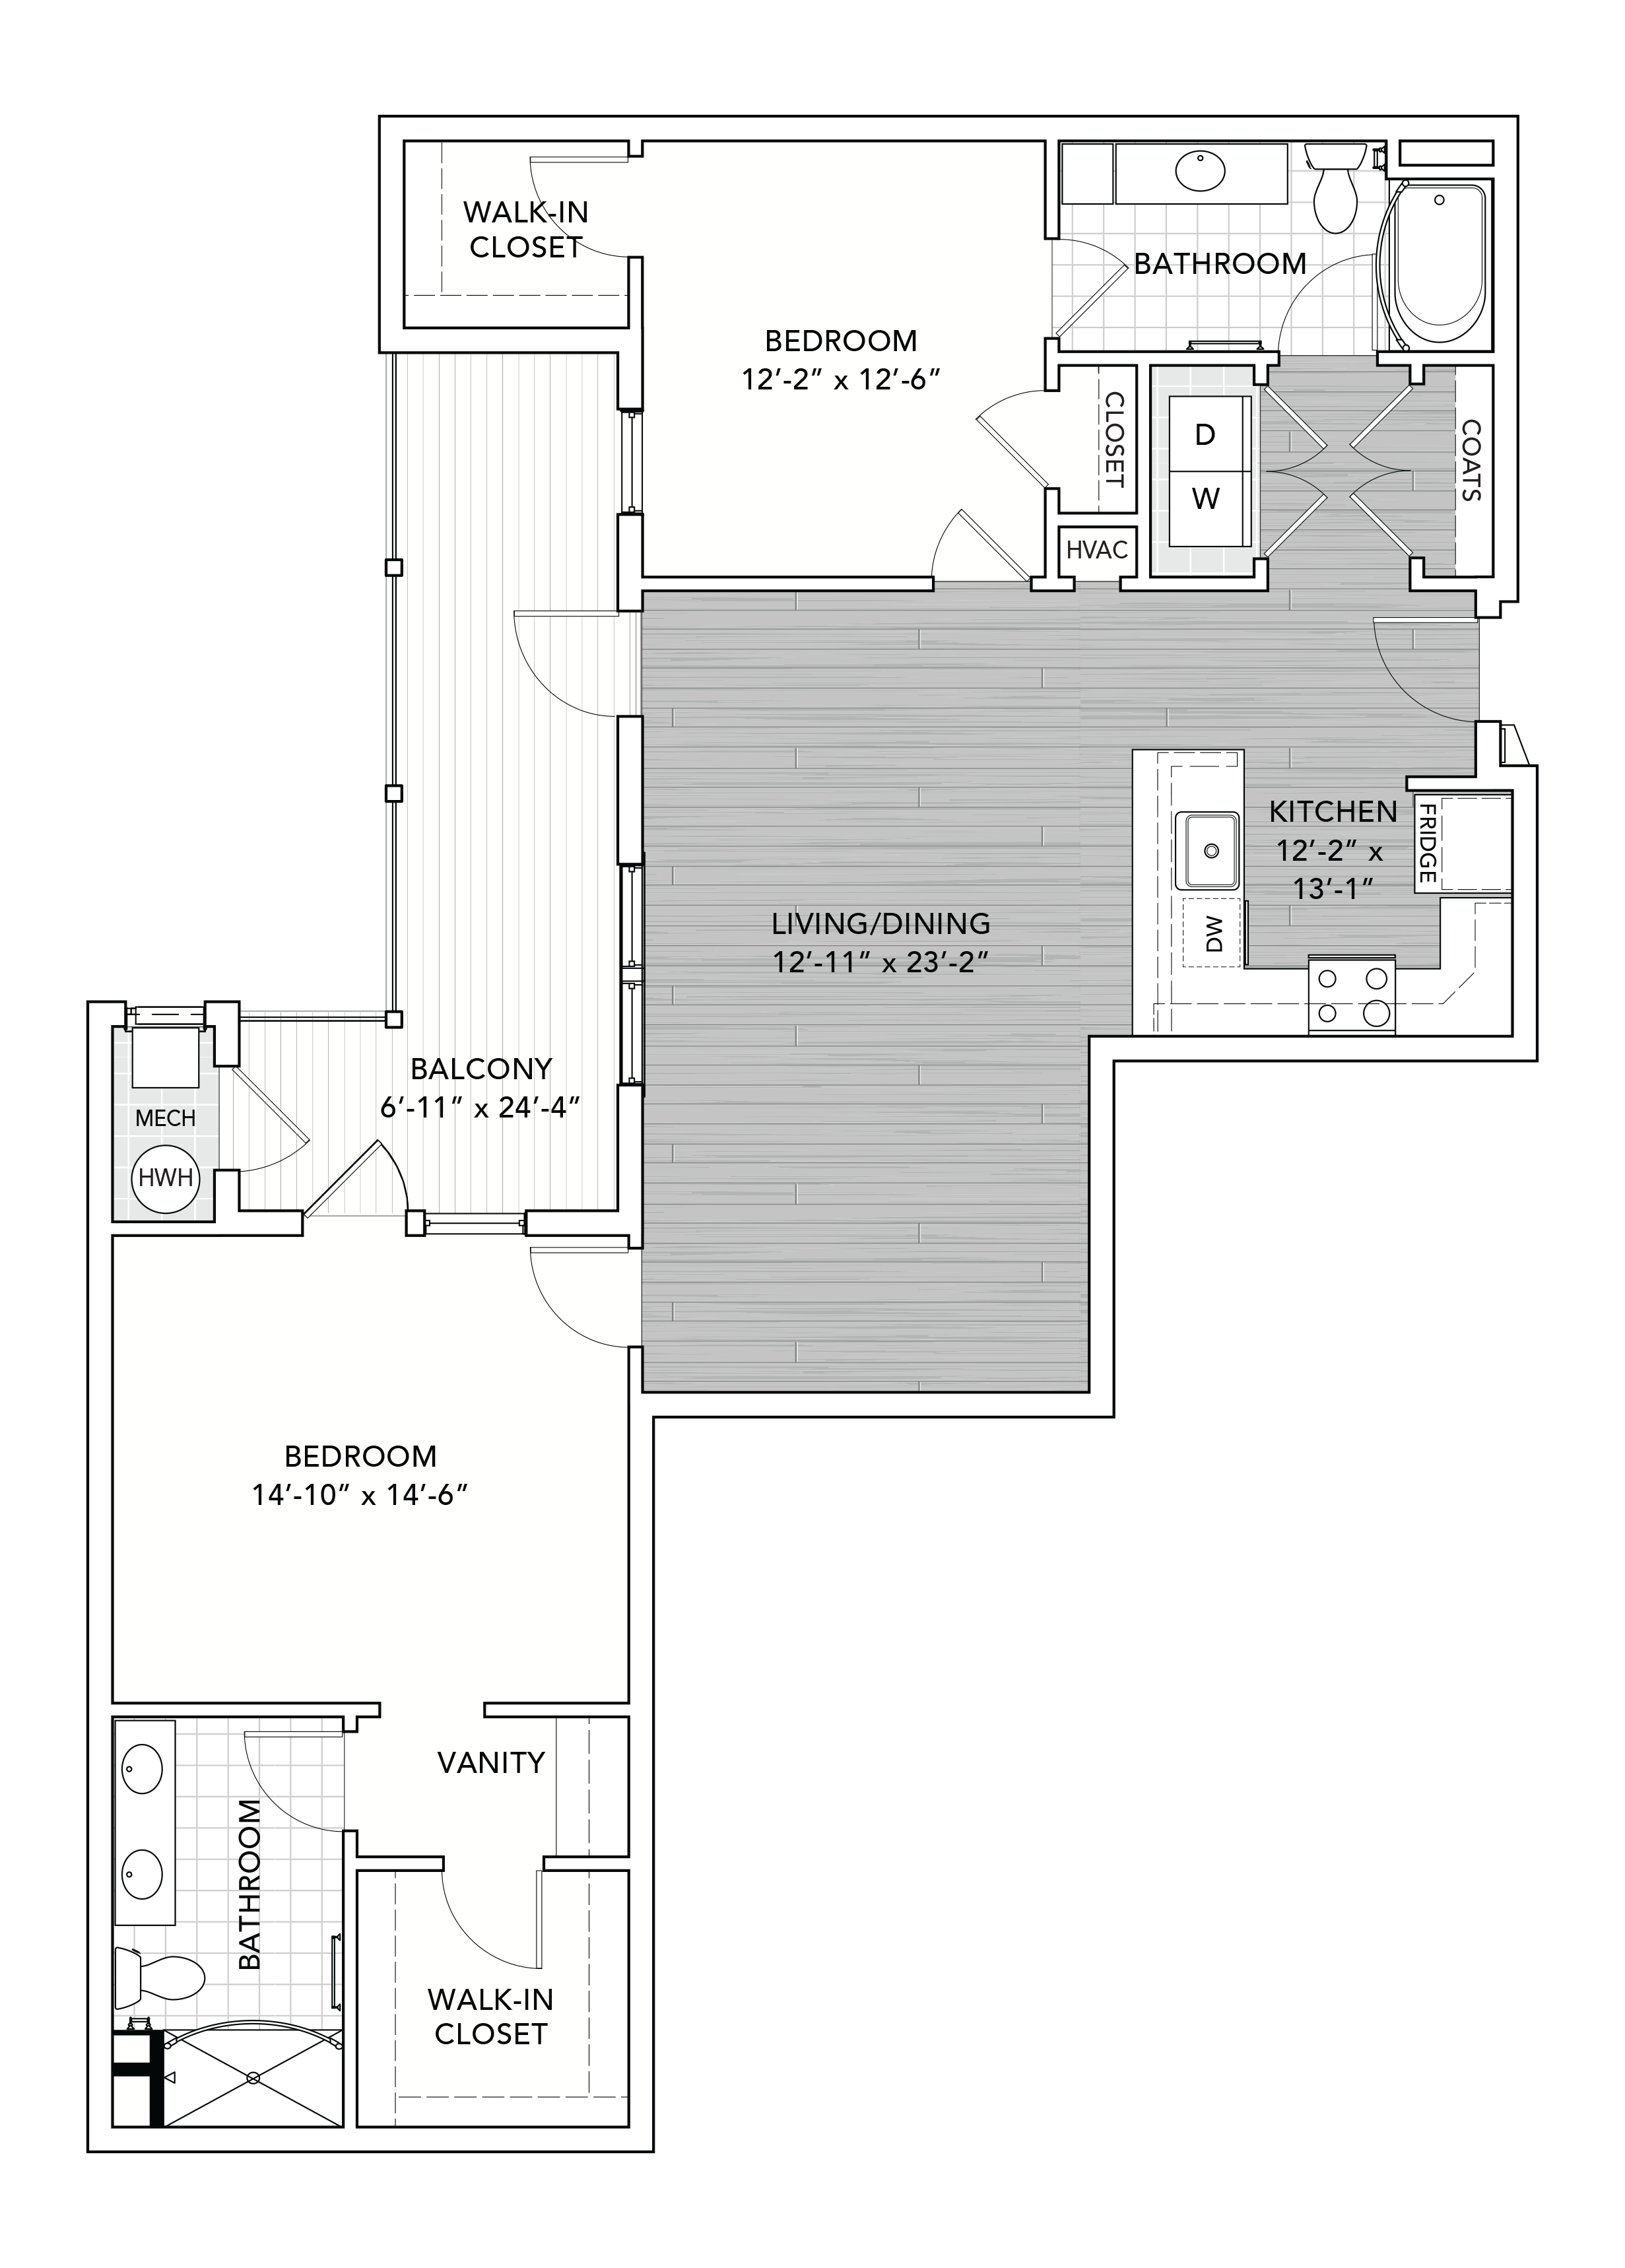 P0655013 parksquare b11 1356 2 floorplan